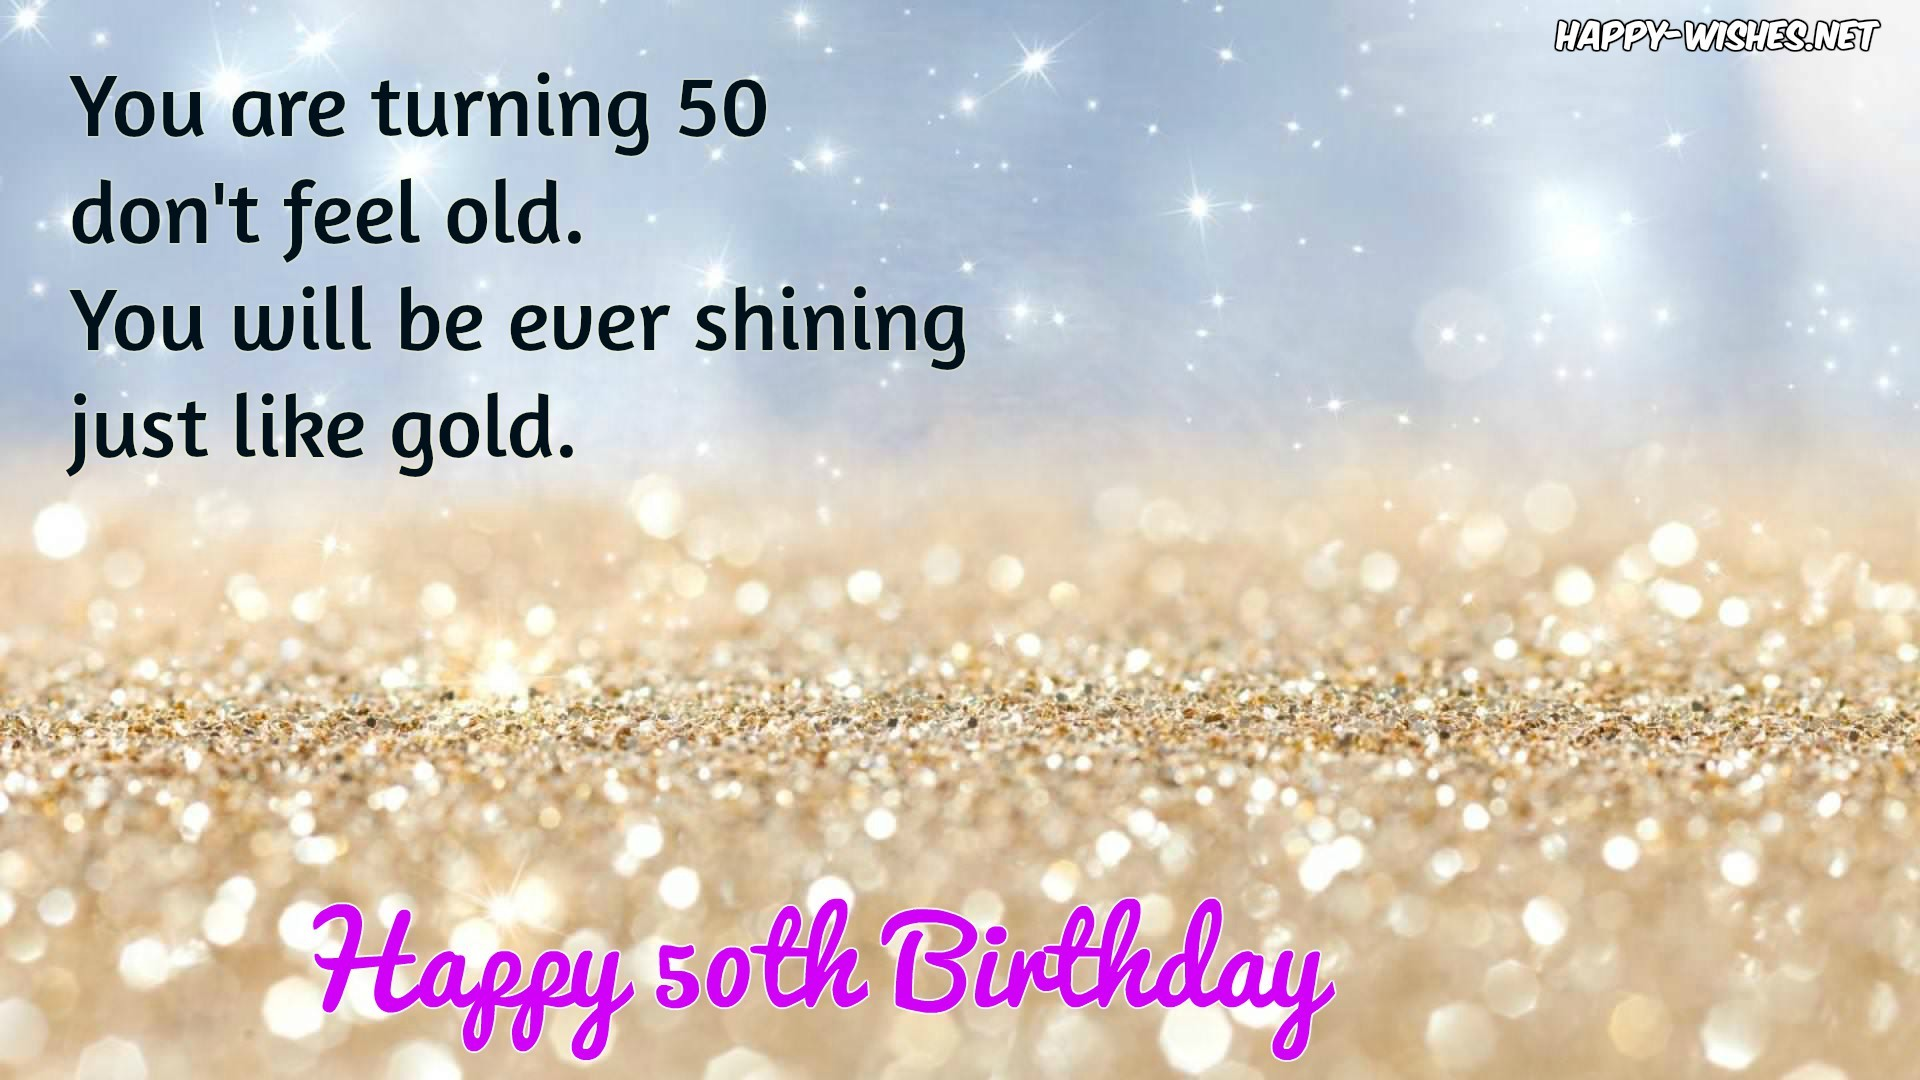 1920x1080, Happy 50th Birthday Quote   Data Id 141256 - 50th Birthday Quotes For Golden Birthday Mom - HD Wallpaper